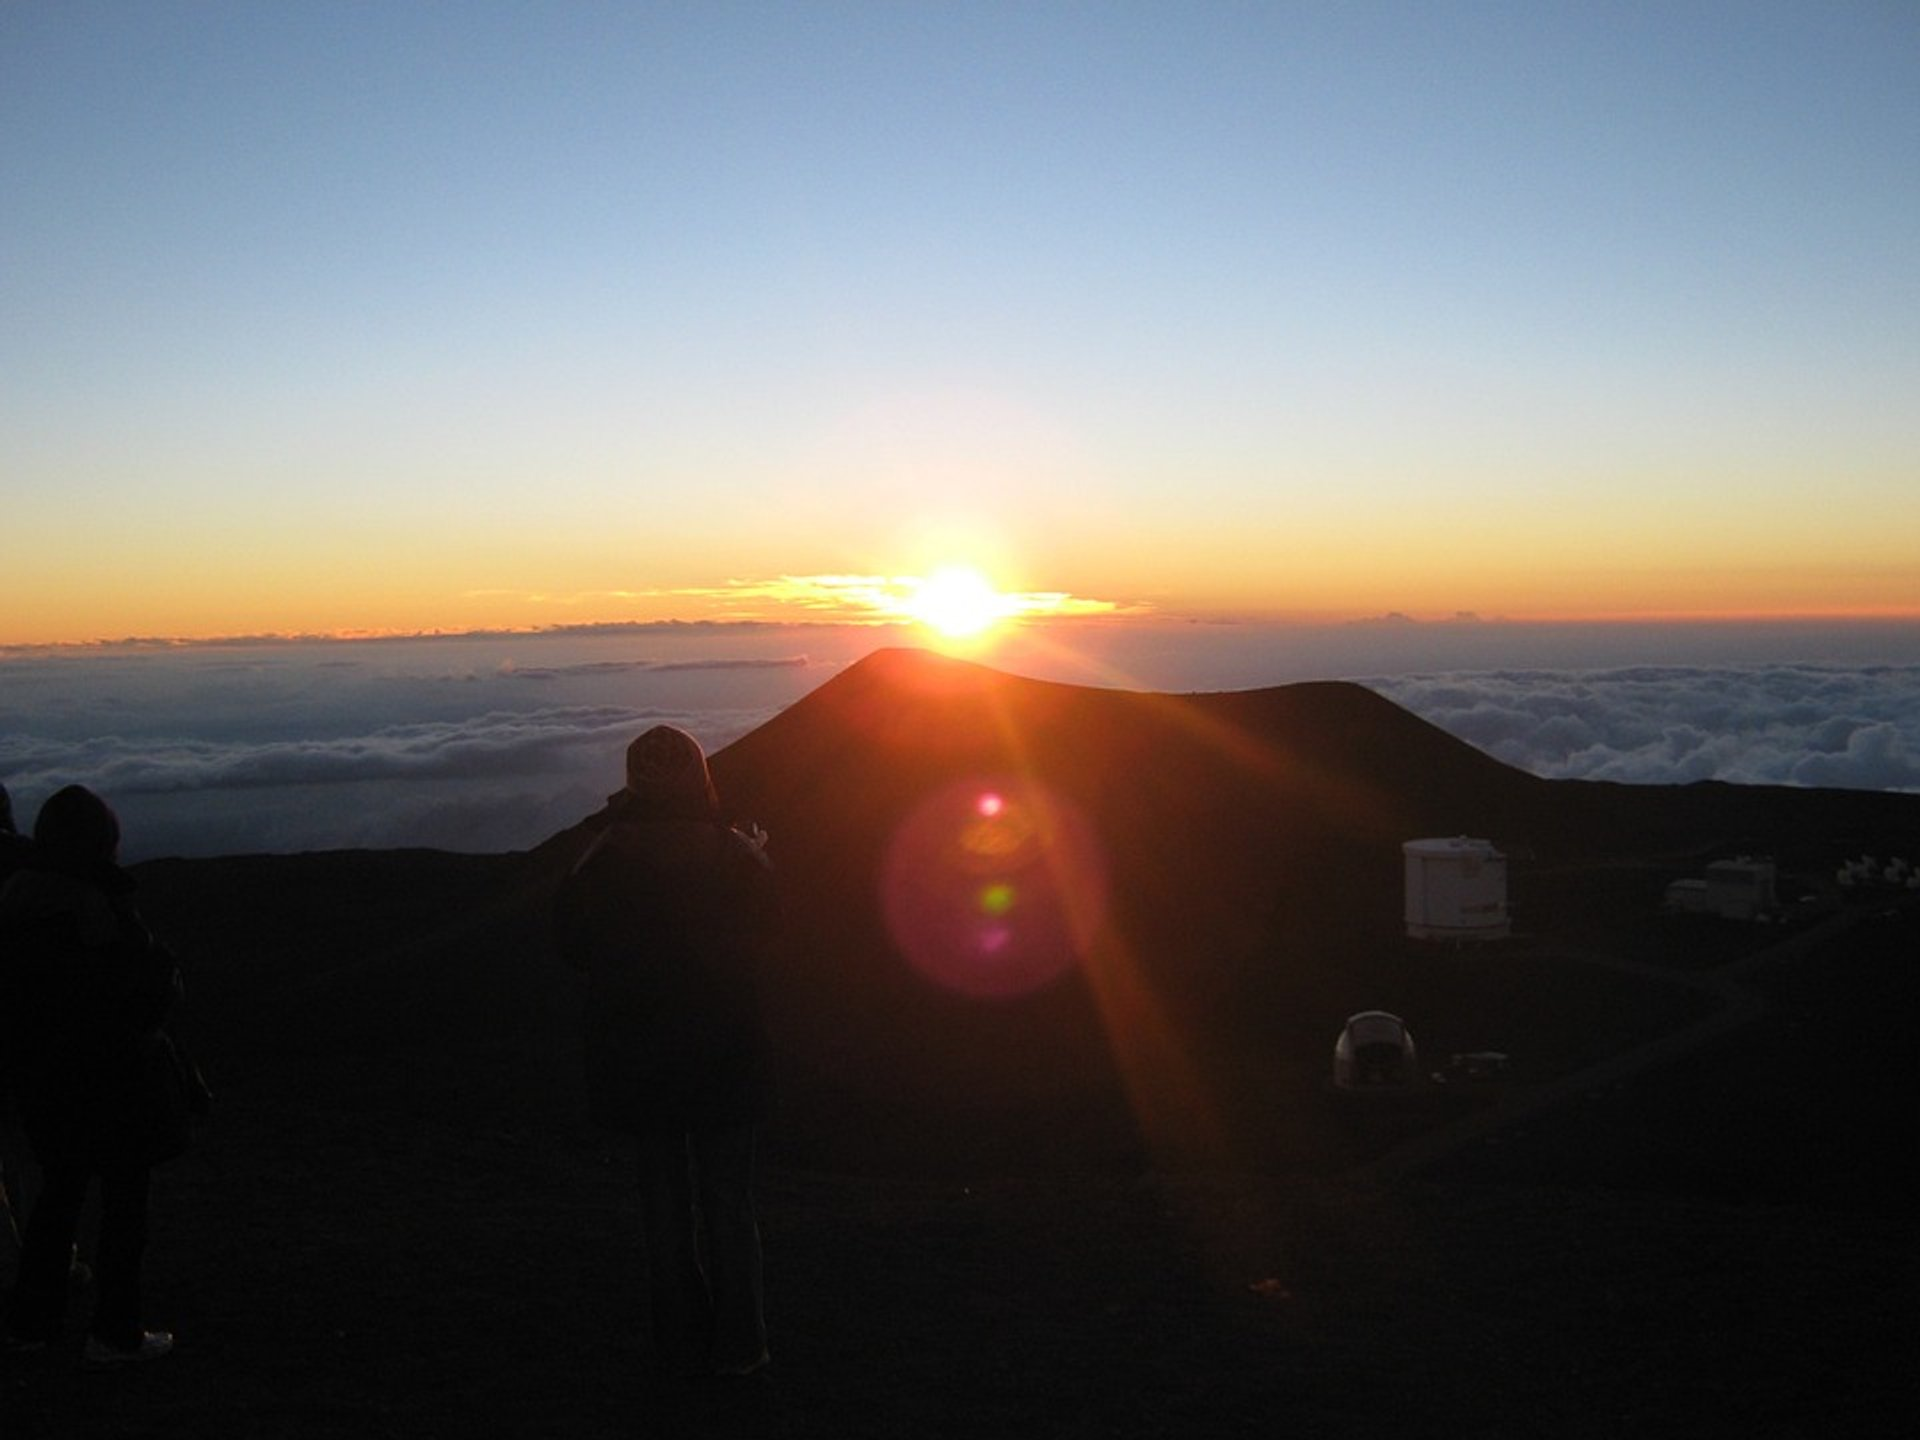 Sunset at Mauna Kea 2020